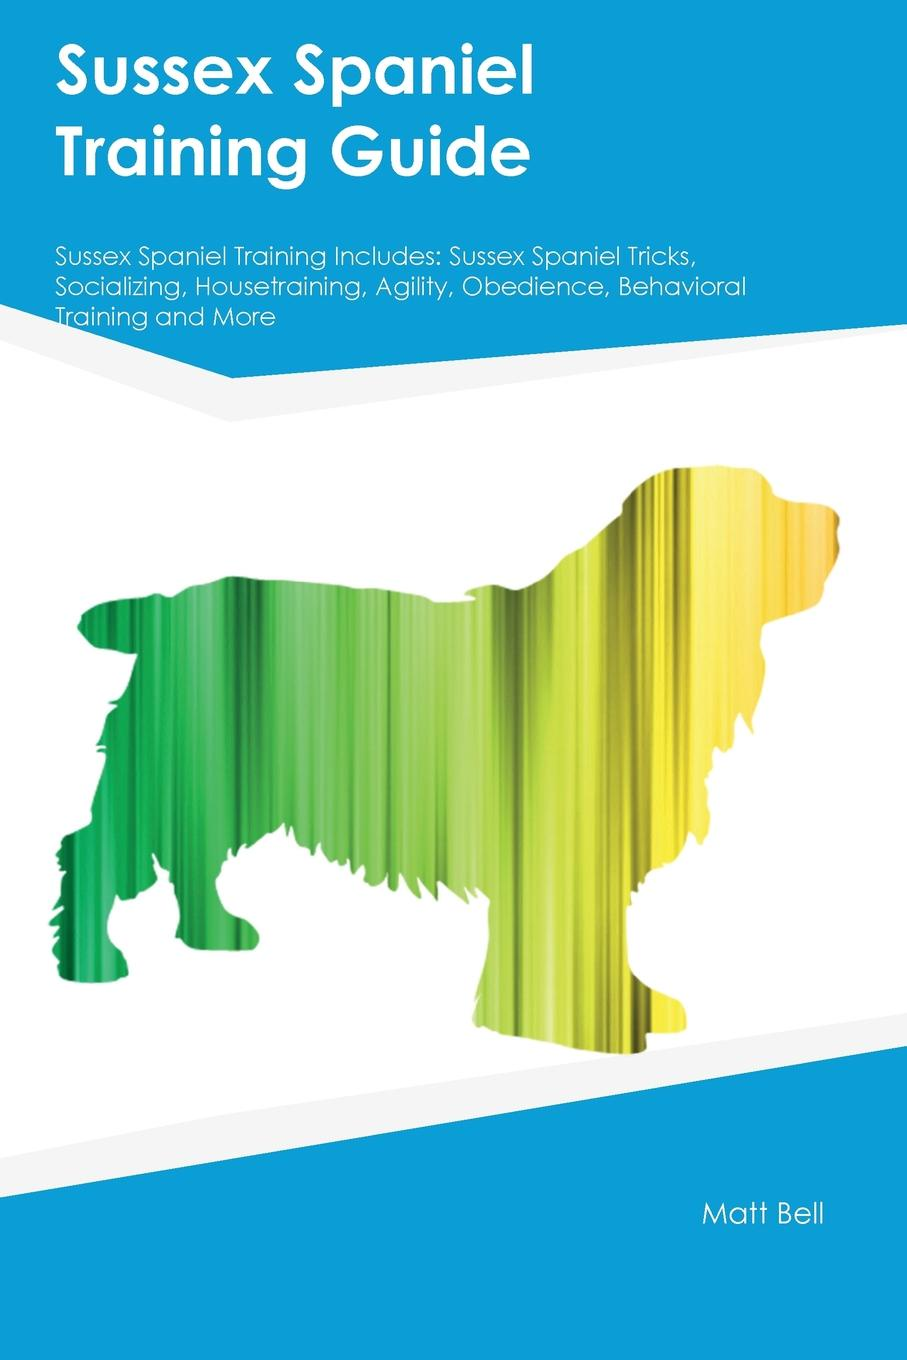 Joseph Smith Sussex Spaniel Training Guide Includes. Tricks, Socializing, Housetraining, Agility, Obedience, Behavioral and More